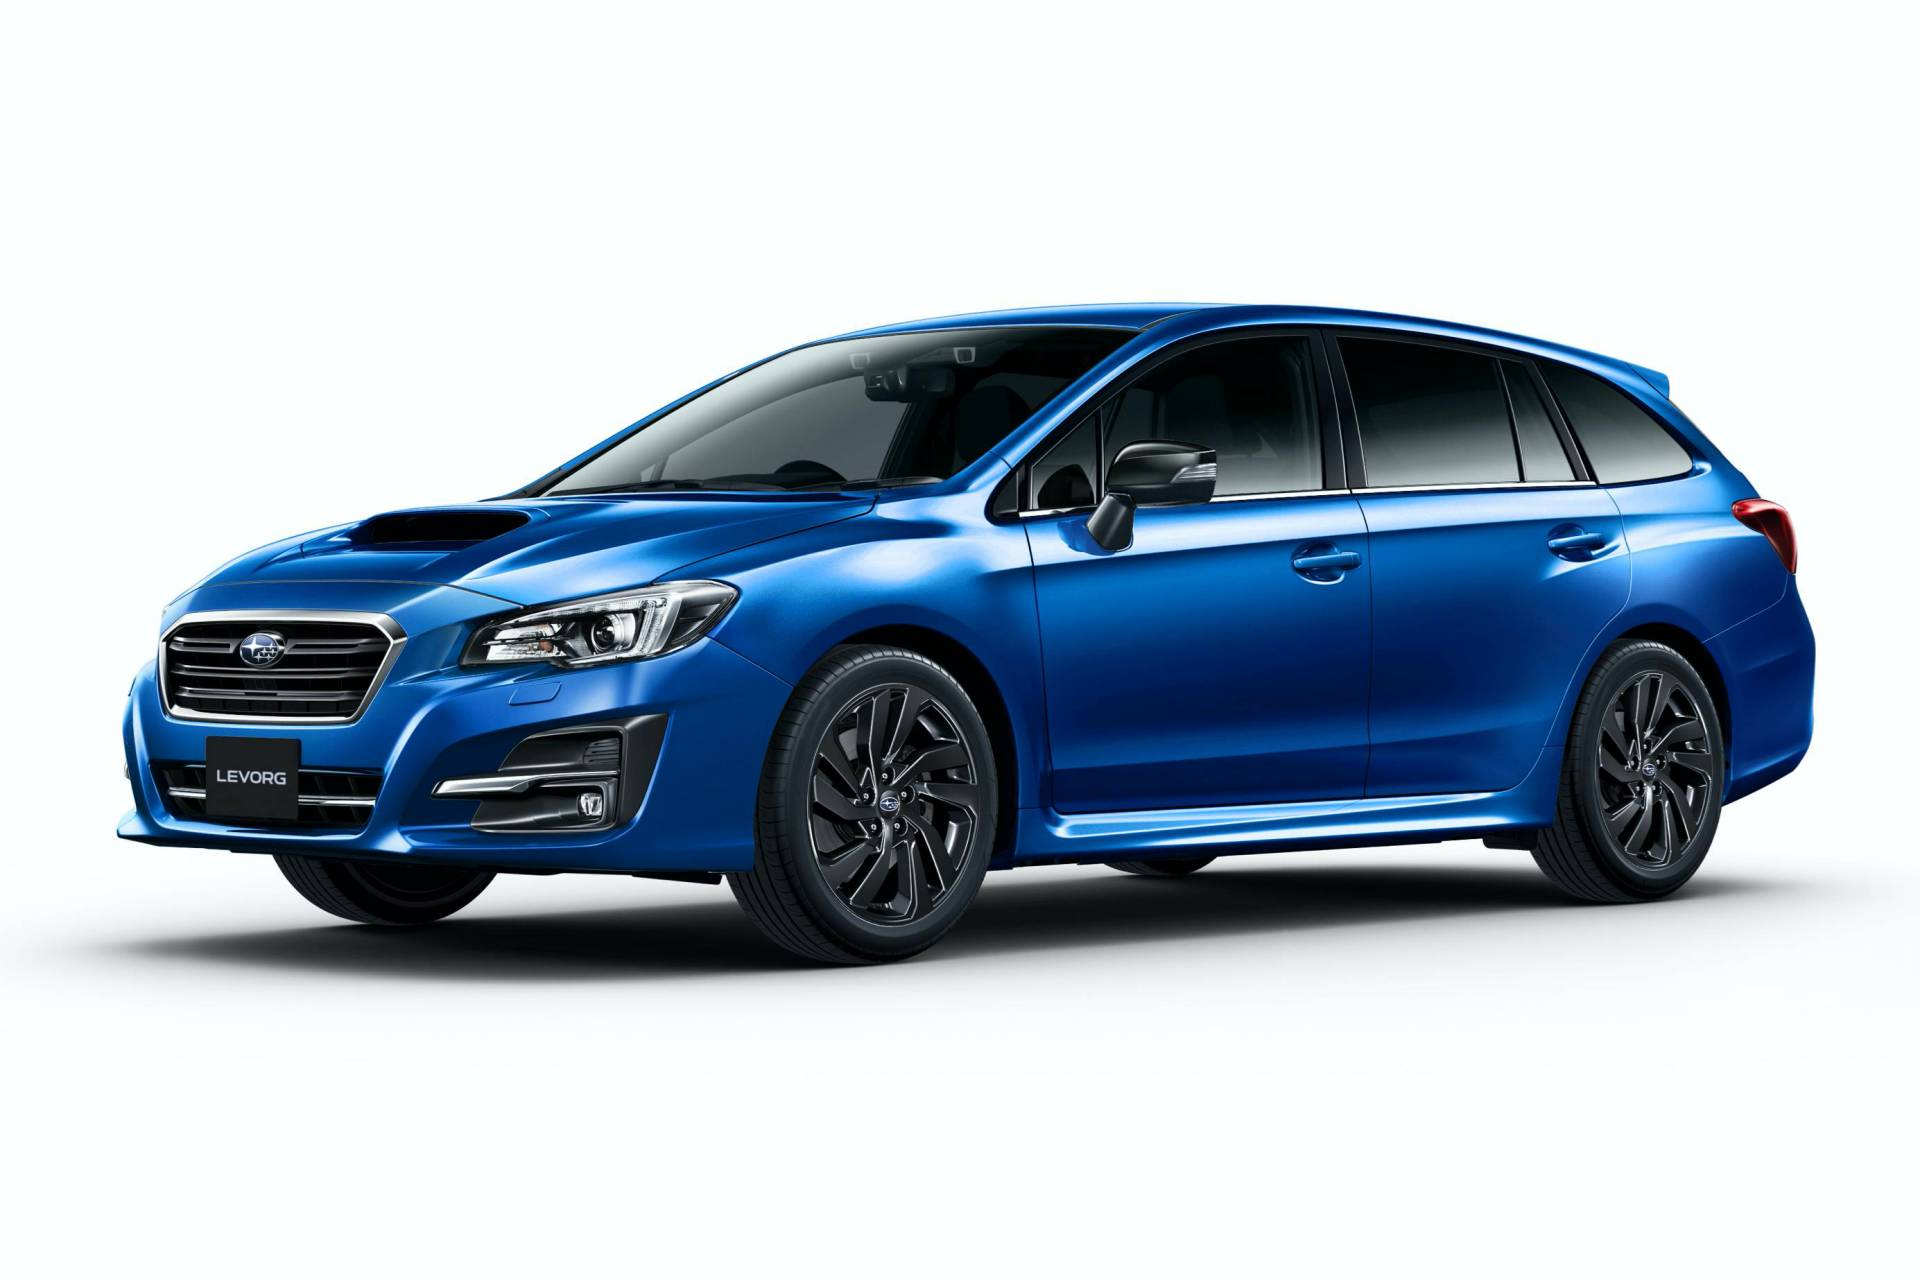 Subaru-Levorg-2.0GT-EyeSight-V-Sport-1